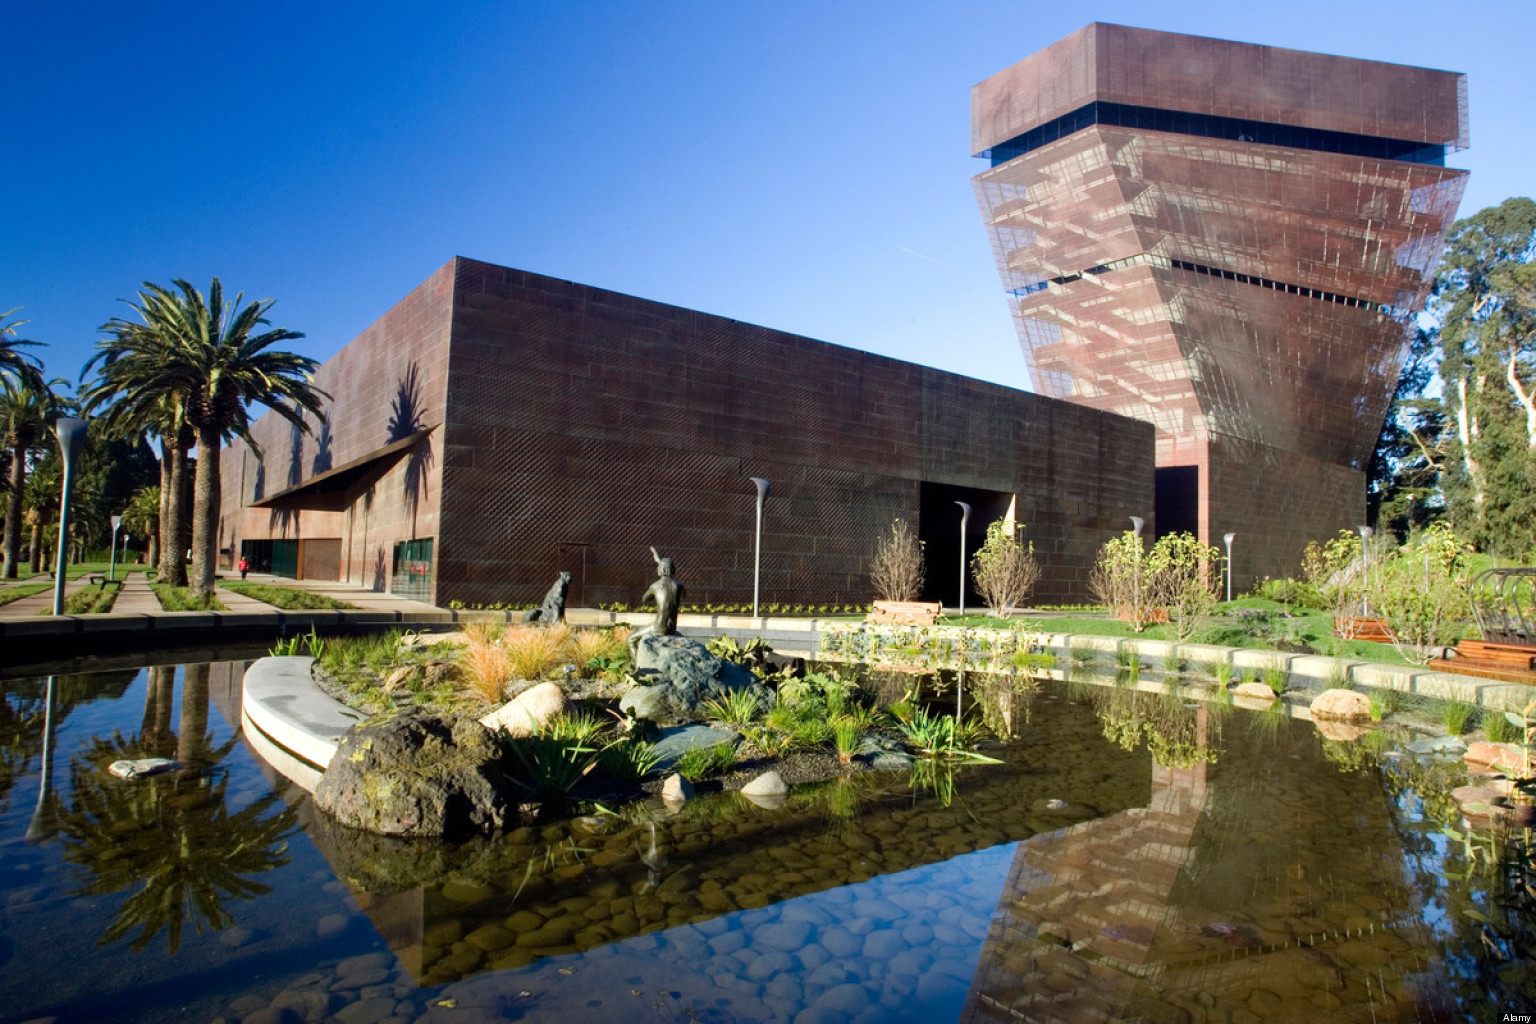 a personal narrative on visiting the de young museum in san francisco